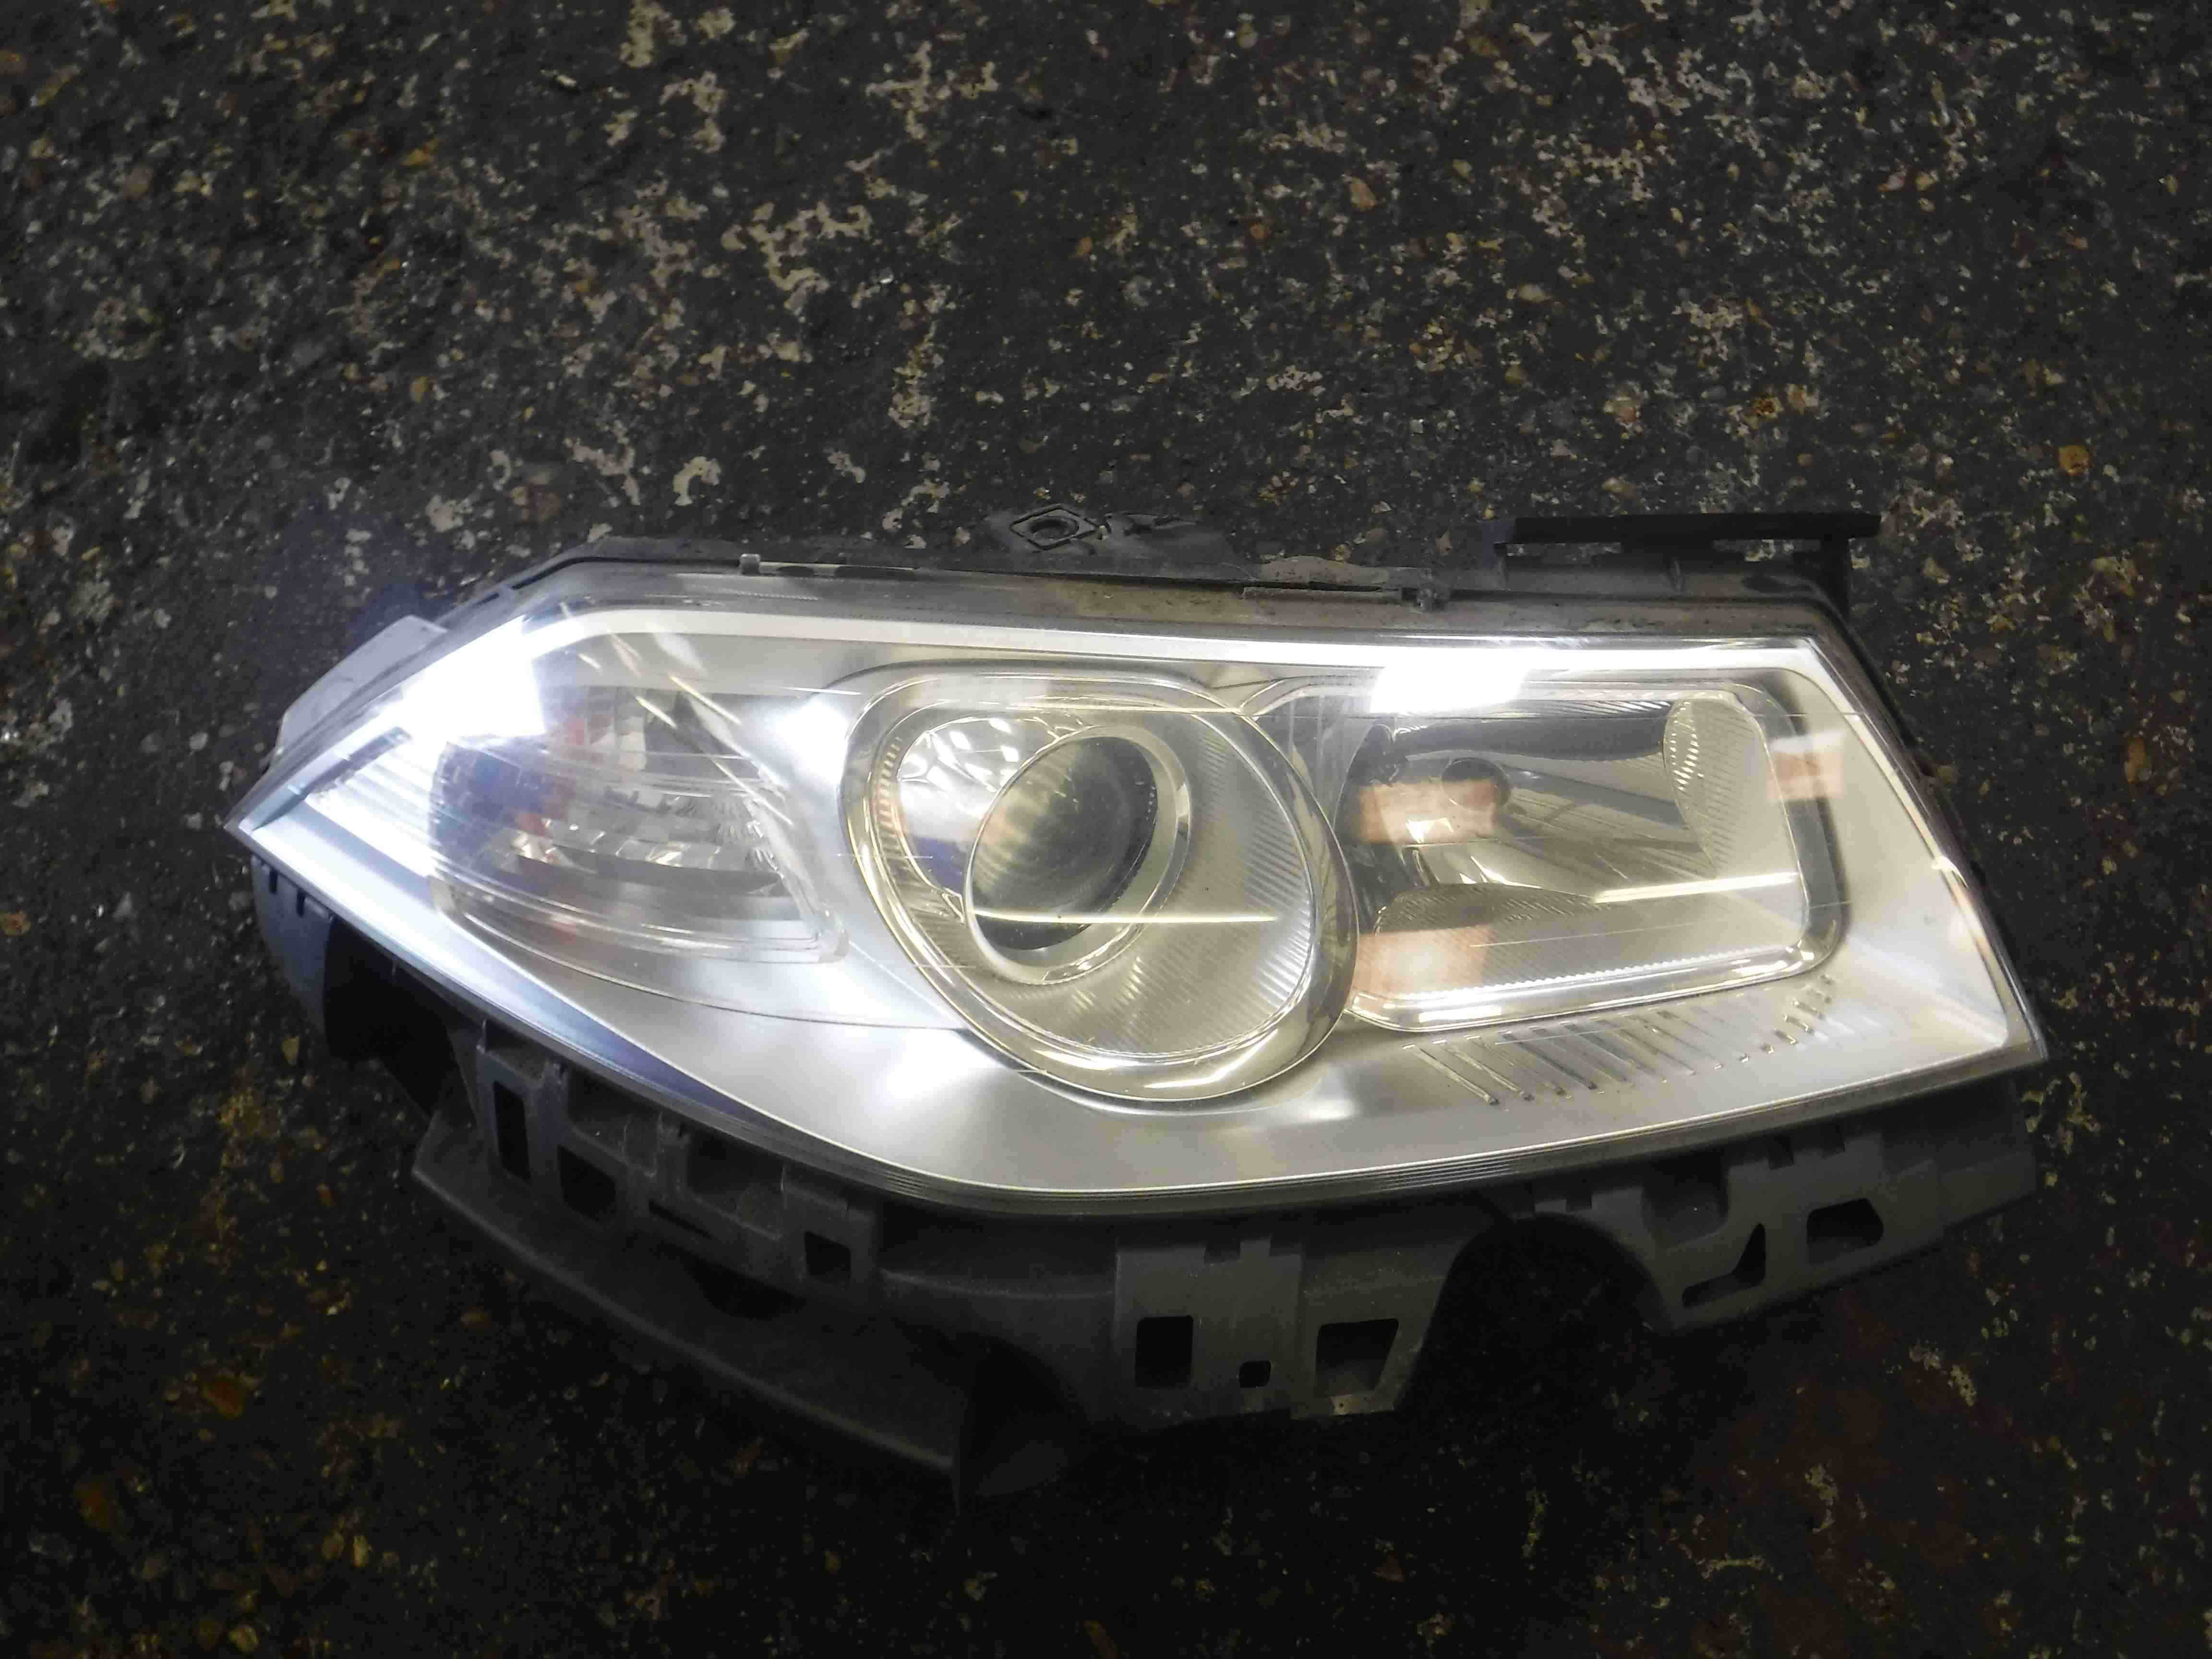 Renault Megane 2006-2008 Drivers OSF Front Headlight 8200412745 7701063223